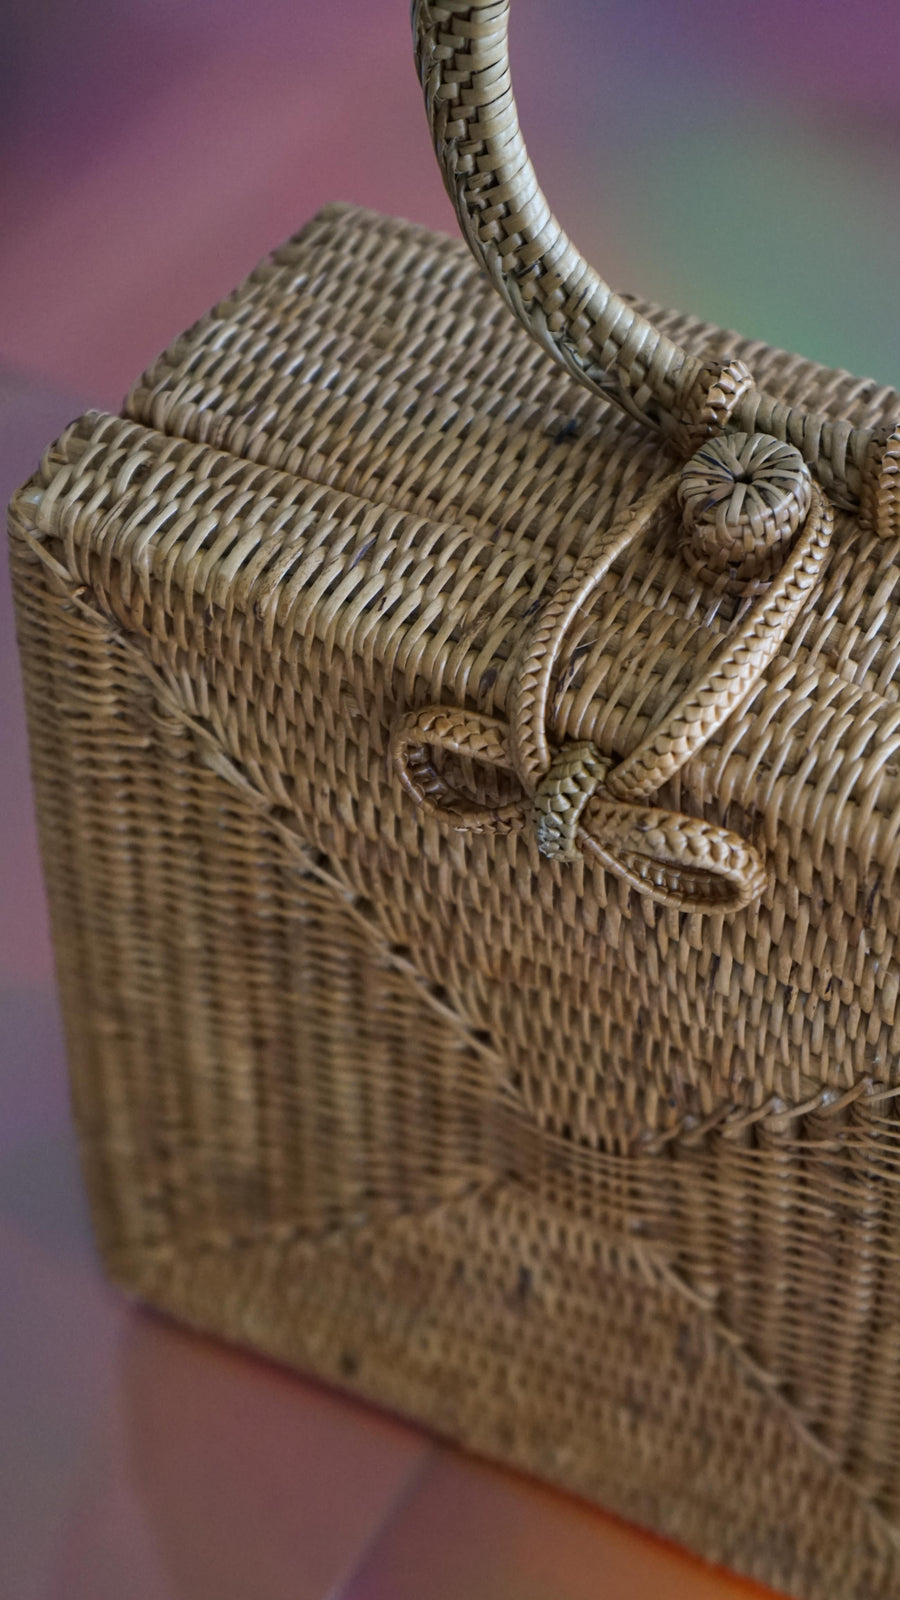 Atta Malika Square Rattan Straw Bag With Top Handle By Brunna Co